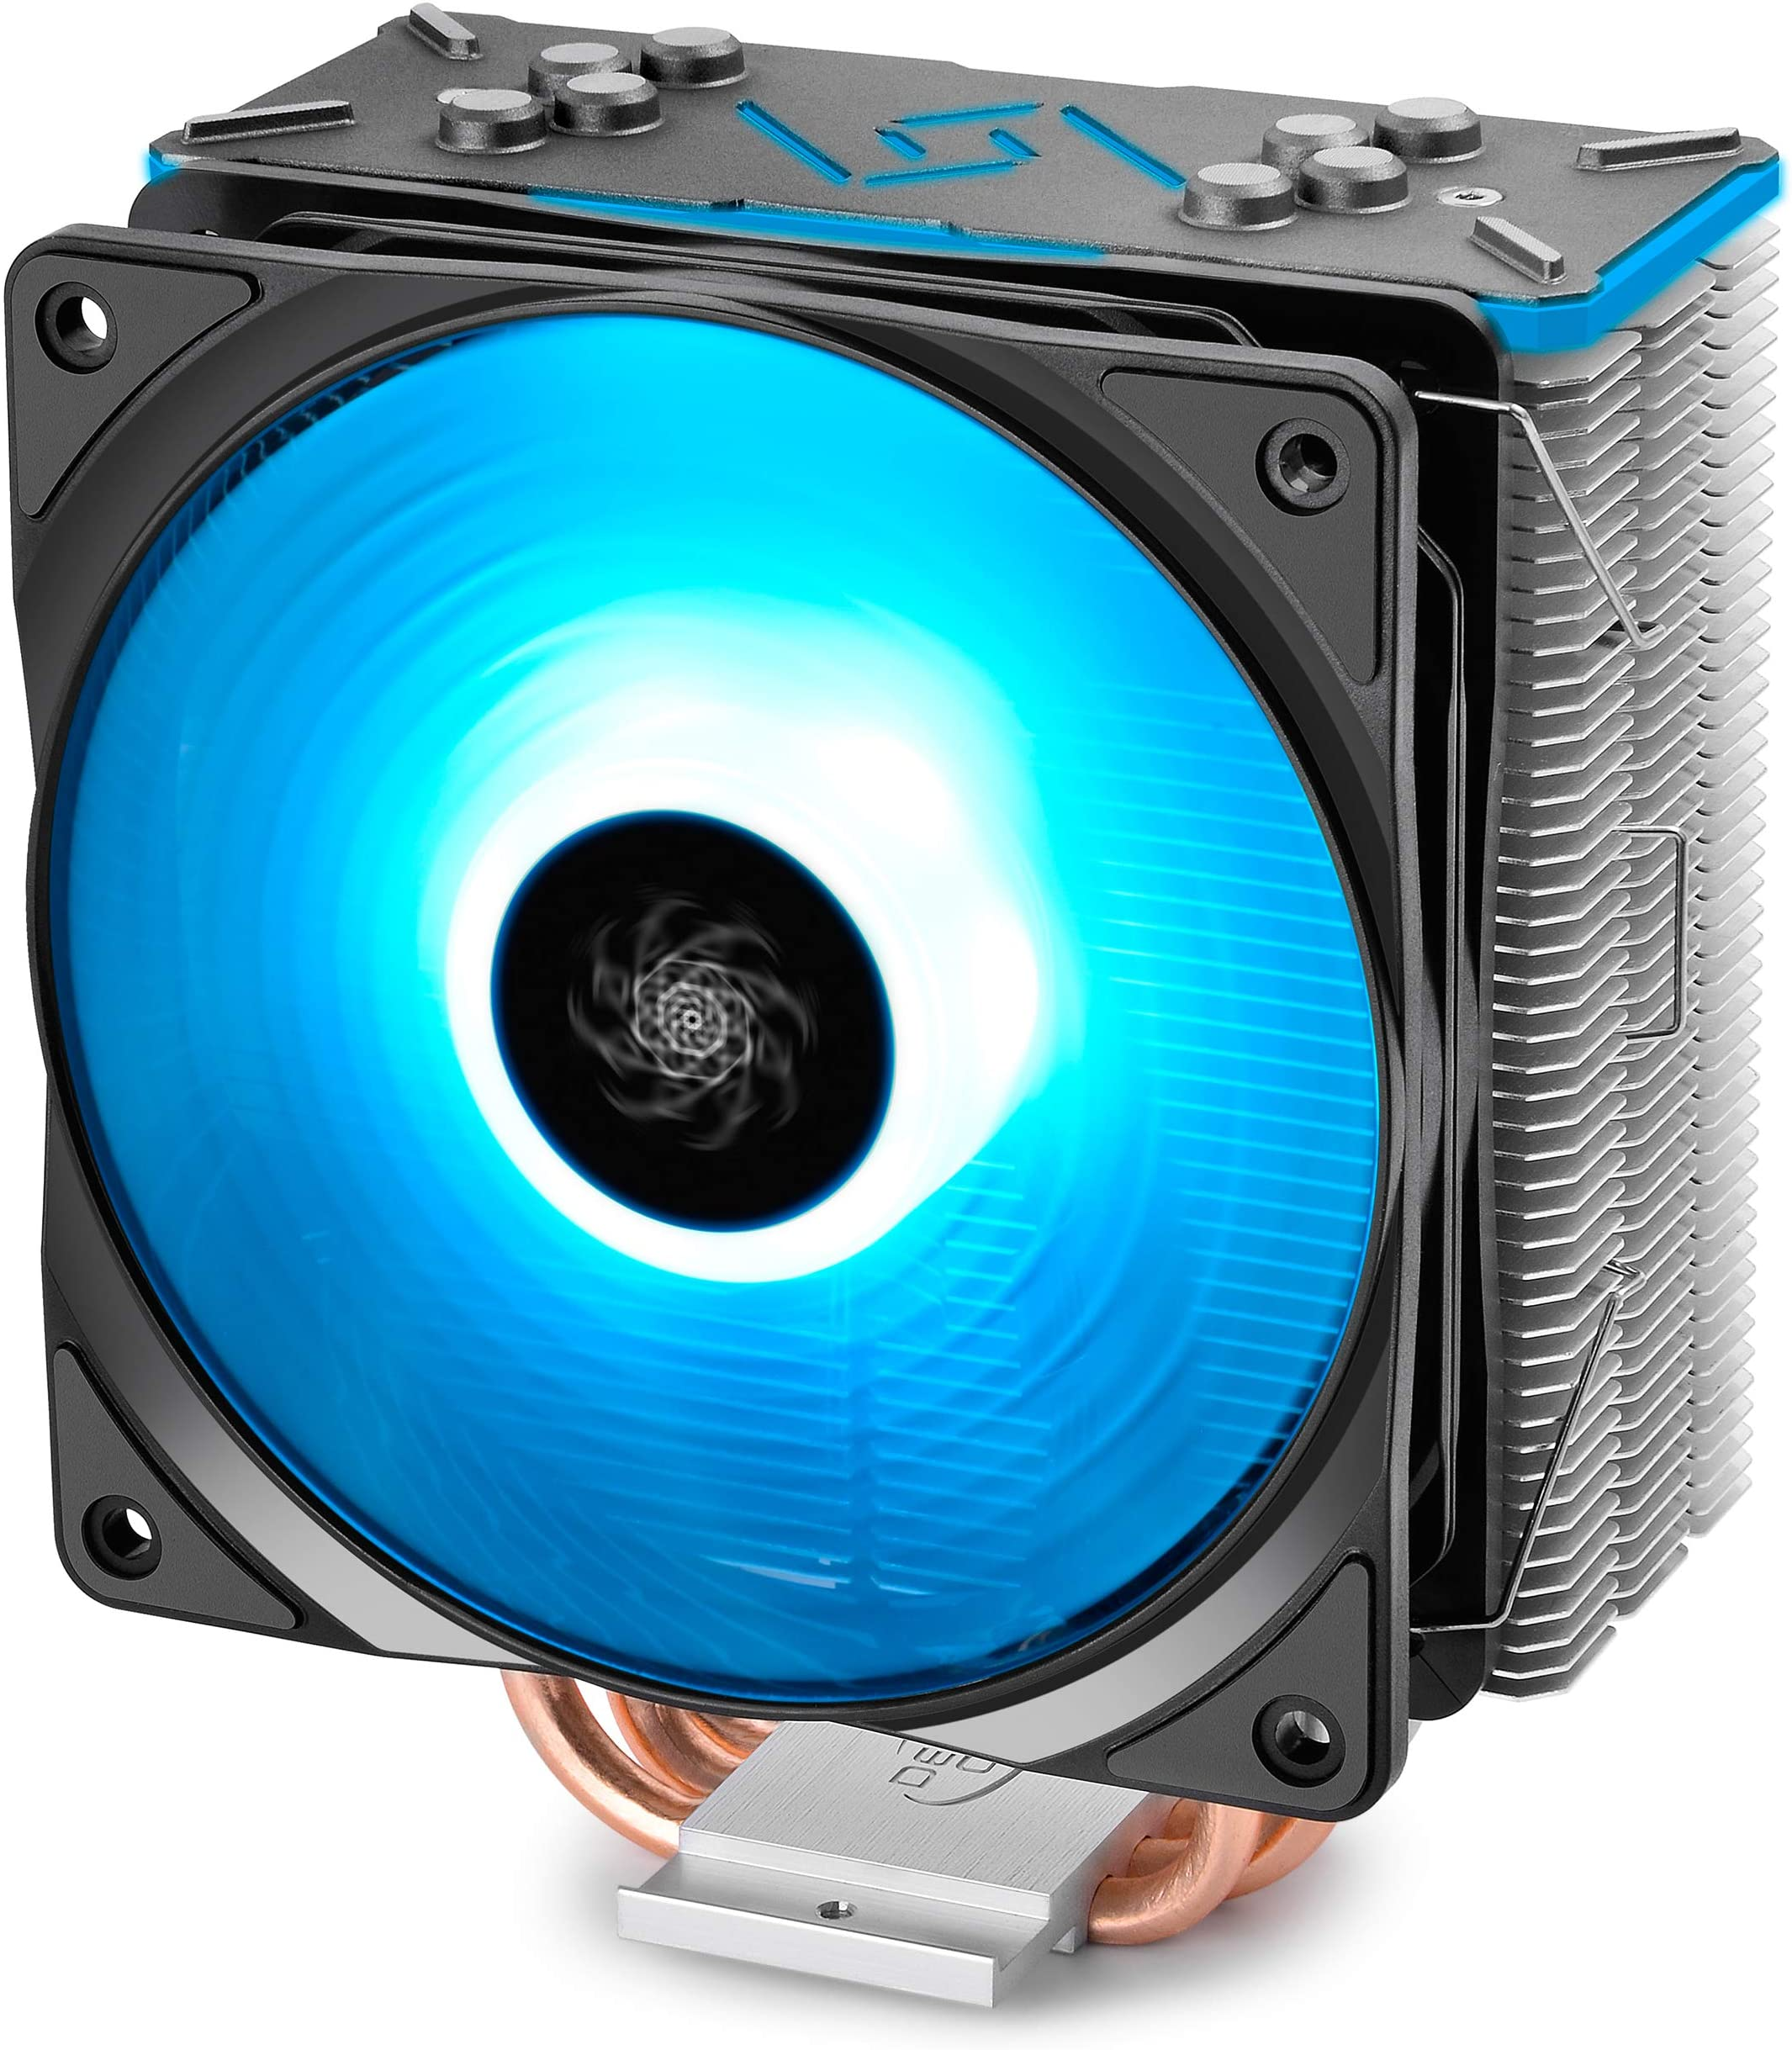 DEEPCOOL GAMMAXX GT BK, CPU Air Cooler, SYNC RGB Fan and RGB Black Top Cover, Cable or Motherboard Control Supported, 4 Heatpipes, 120mm RGB Fan, Universal Socket Solution